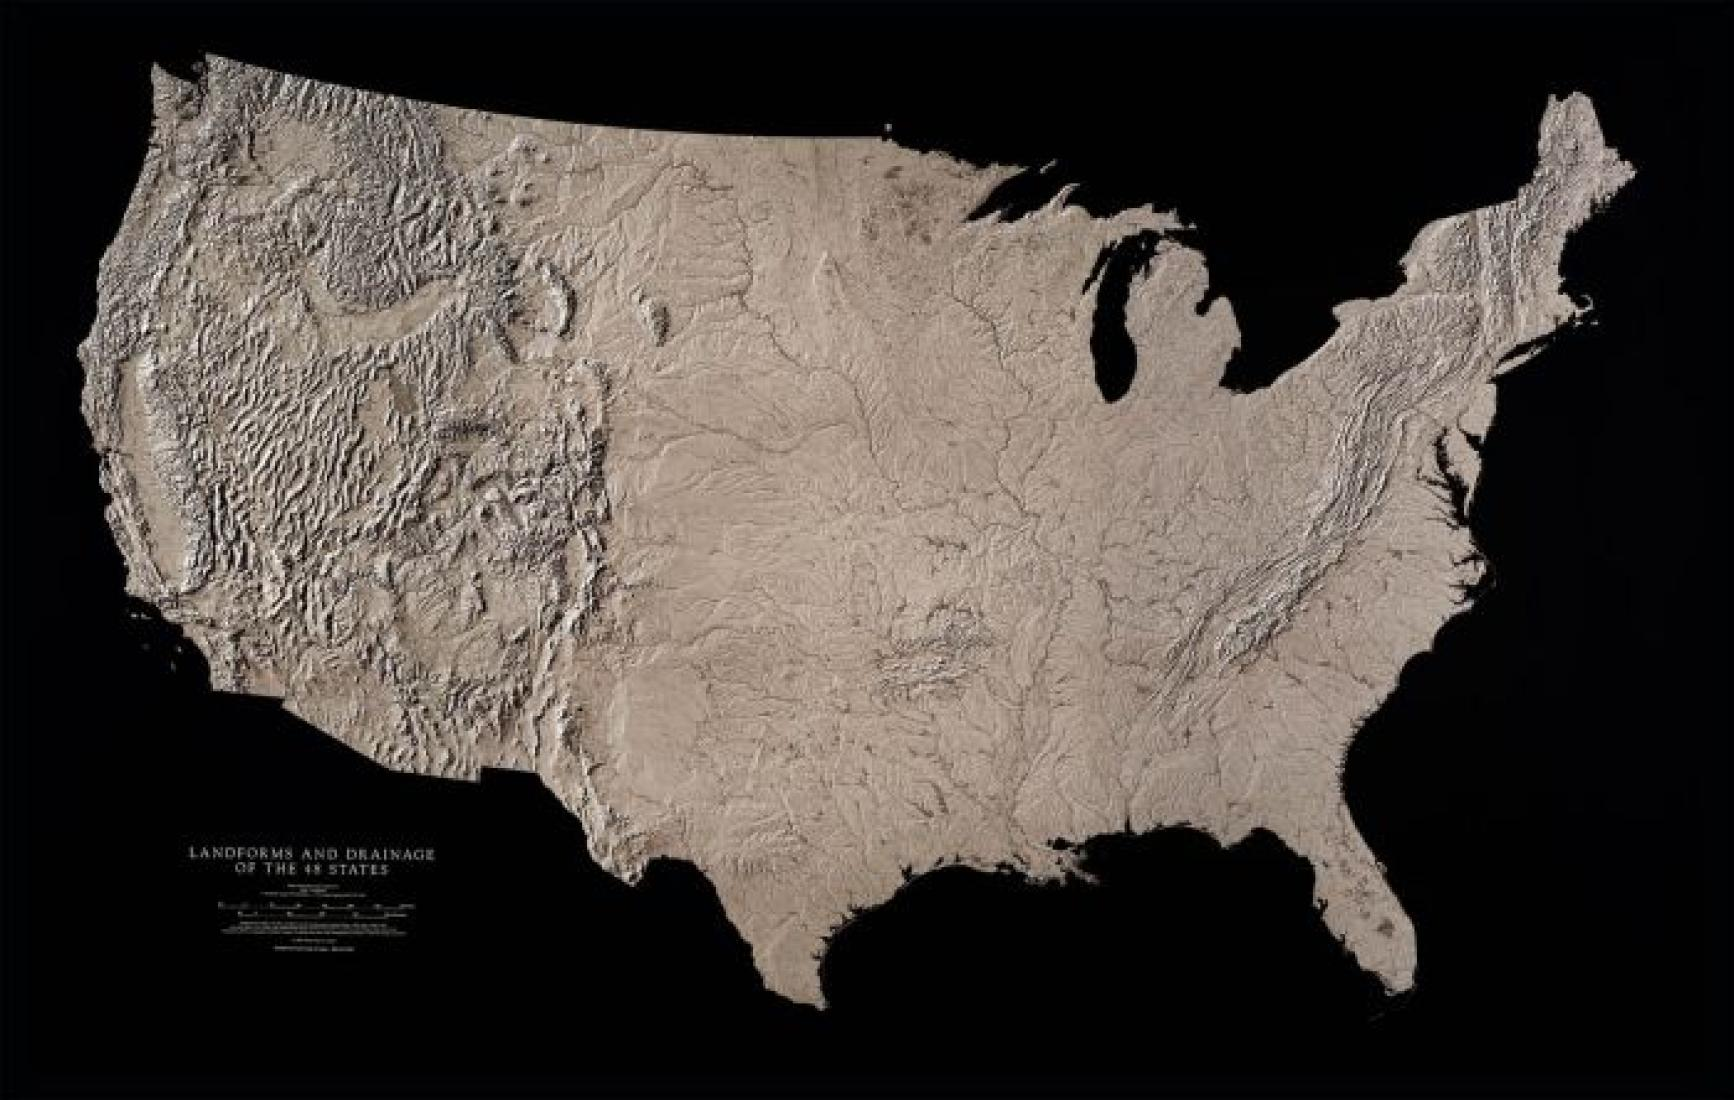 USA, Landforms and Drainage, Black & White Wall Map by Raven Maps